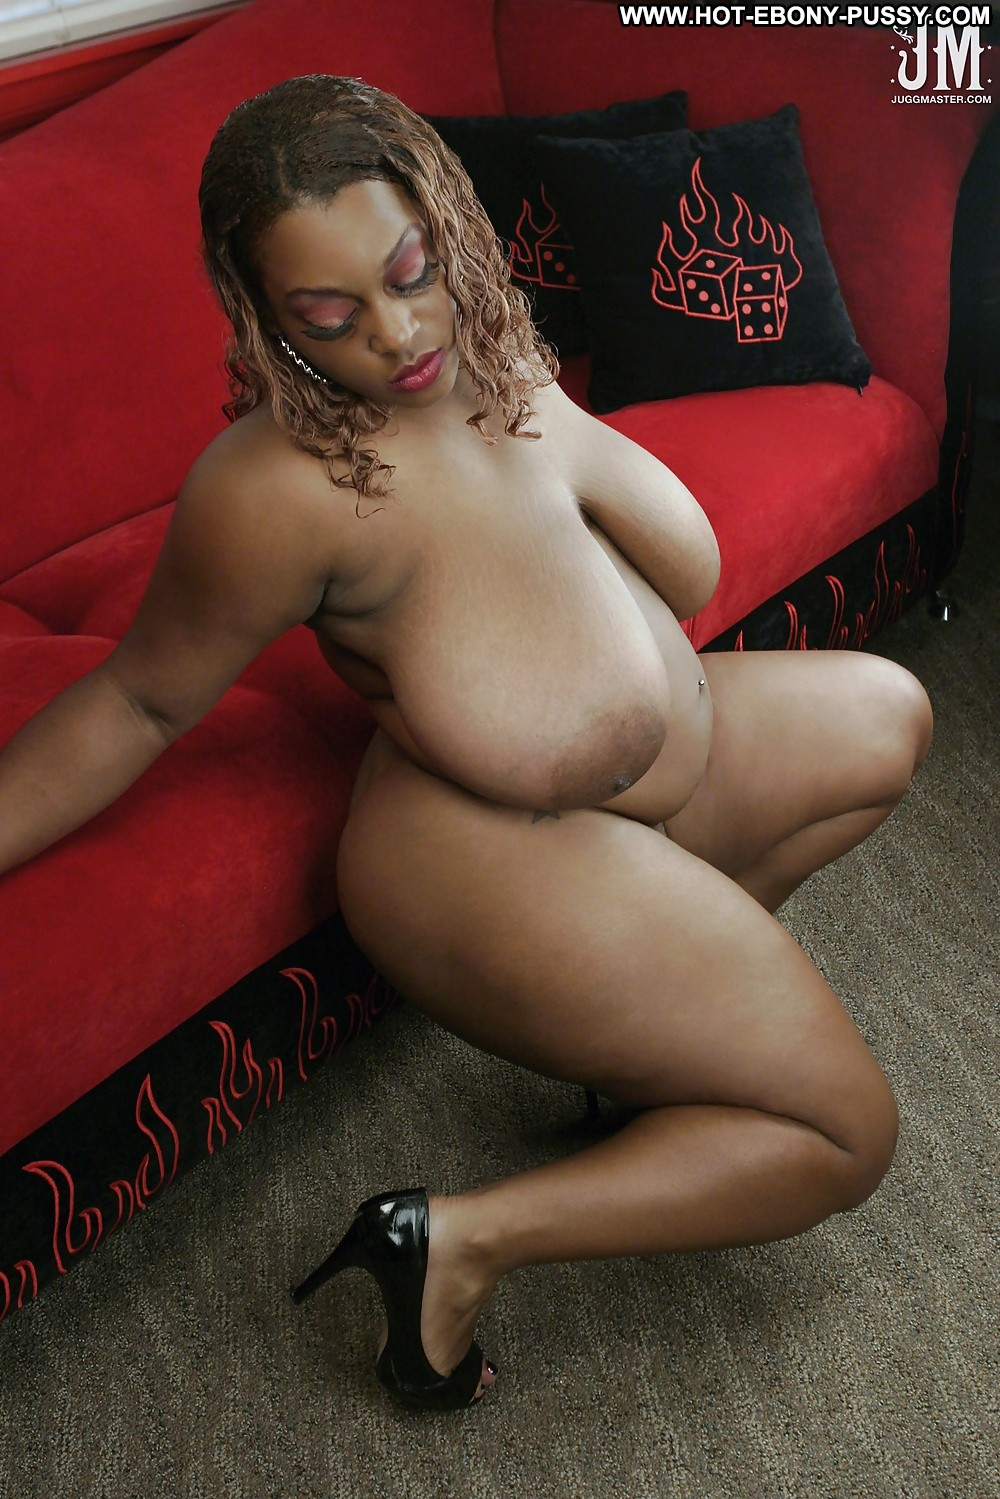 Big ebony boobs webcam